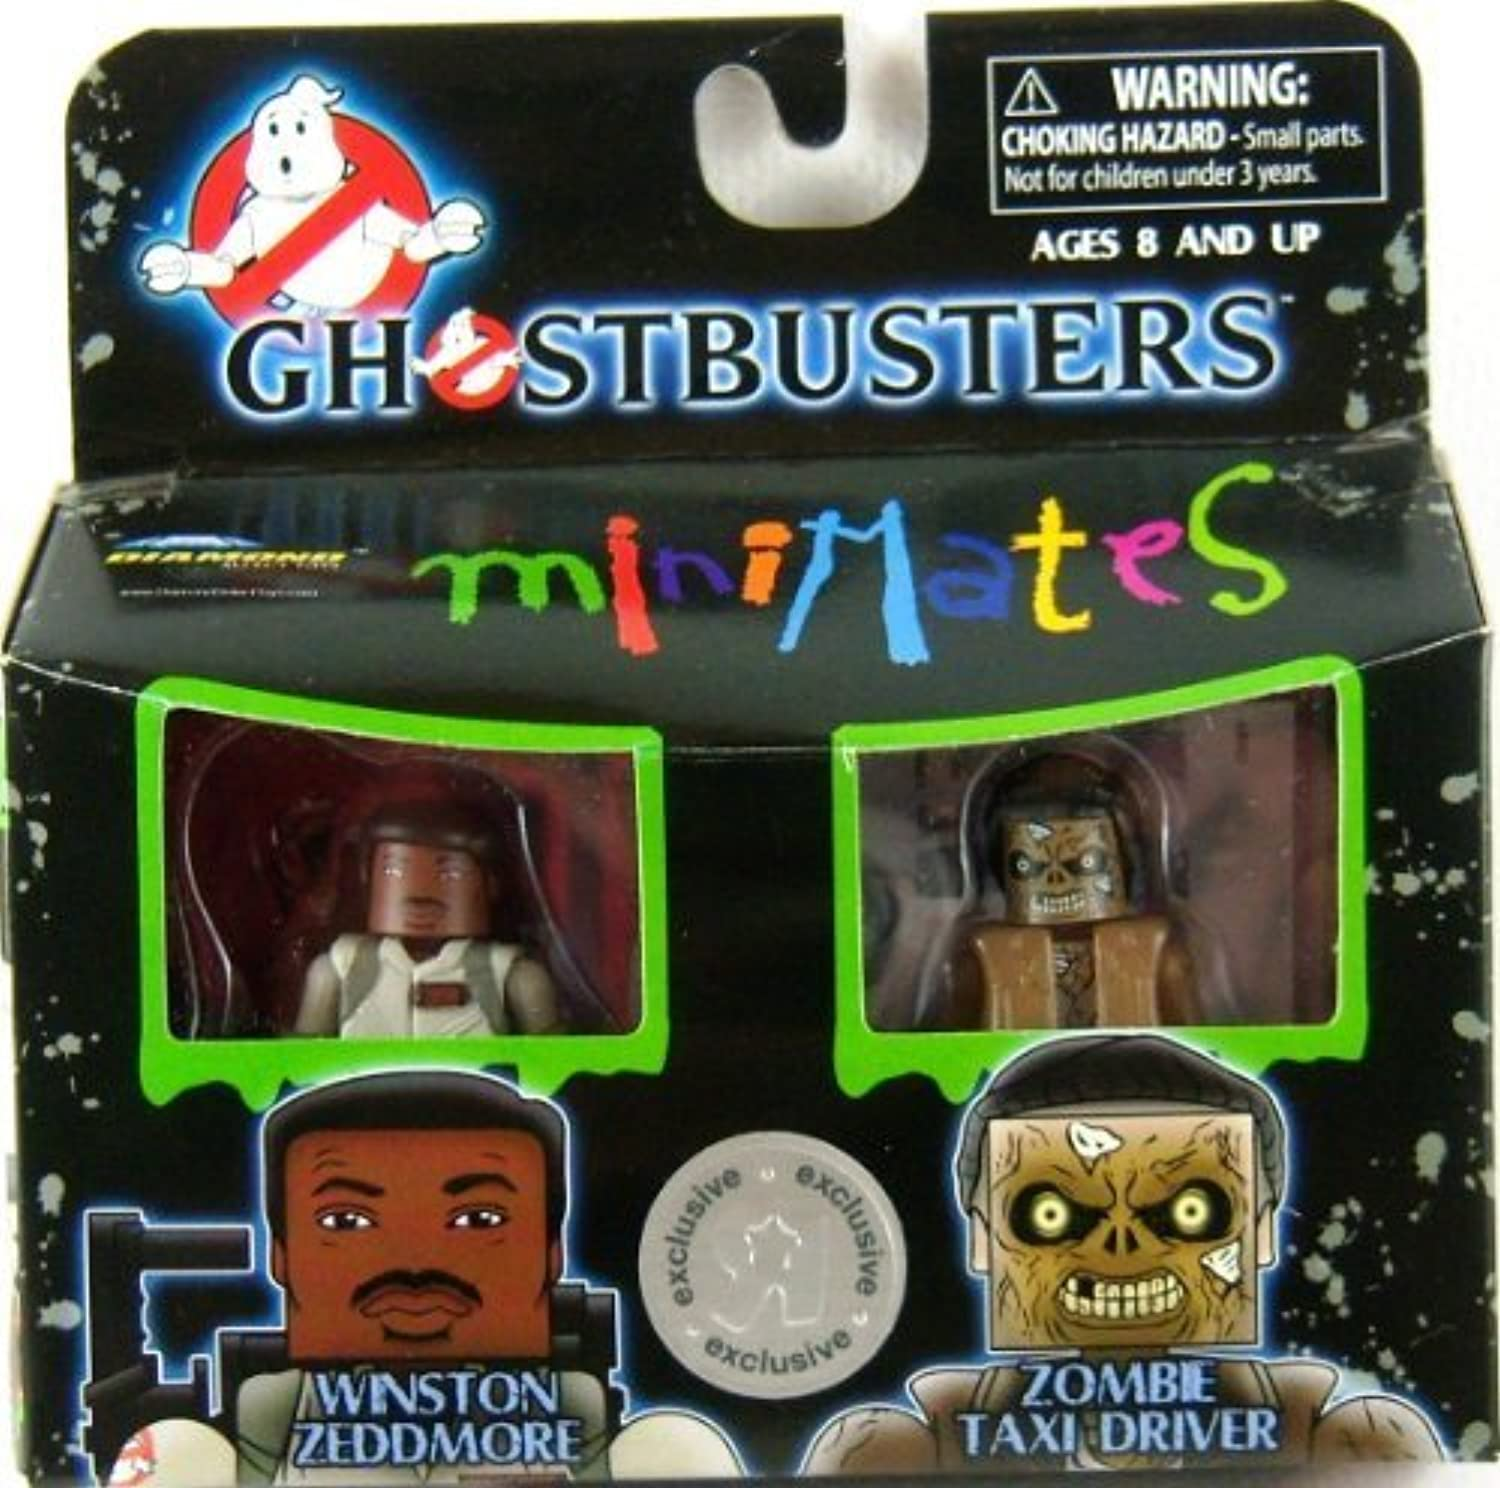 Ghostbusters Minimates Winston Zeddmore & Zombie Taxi Driver by Diamond Select